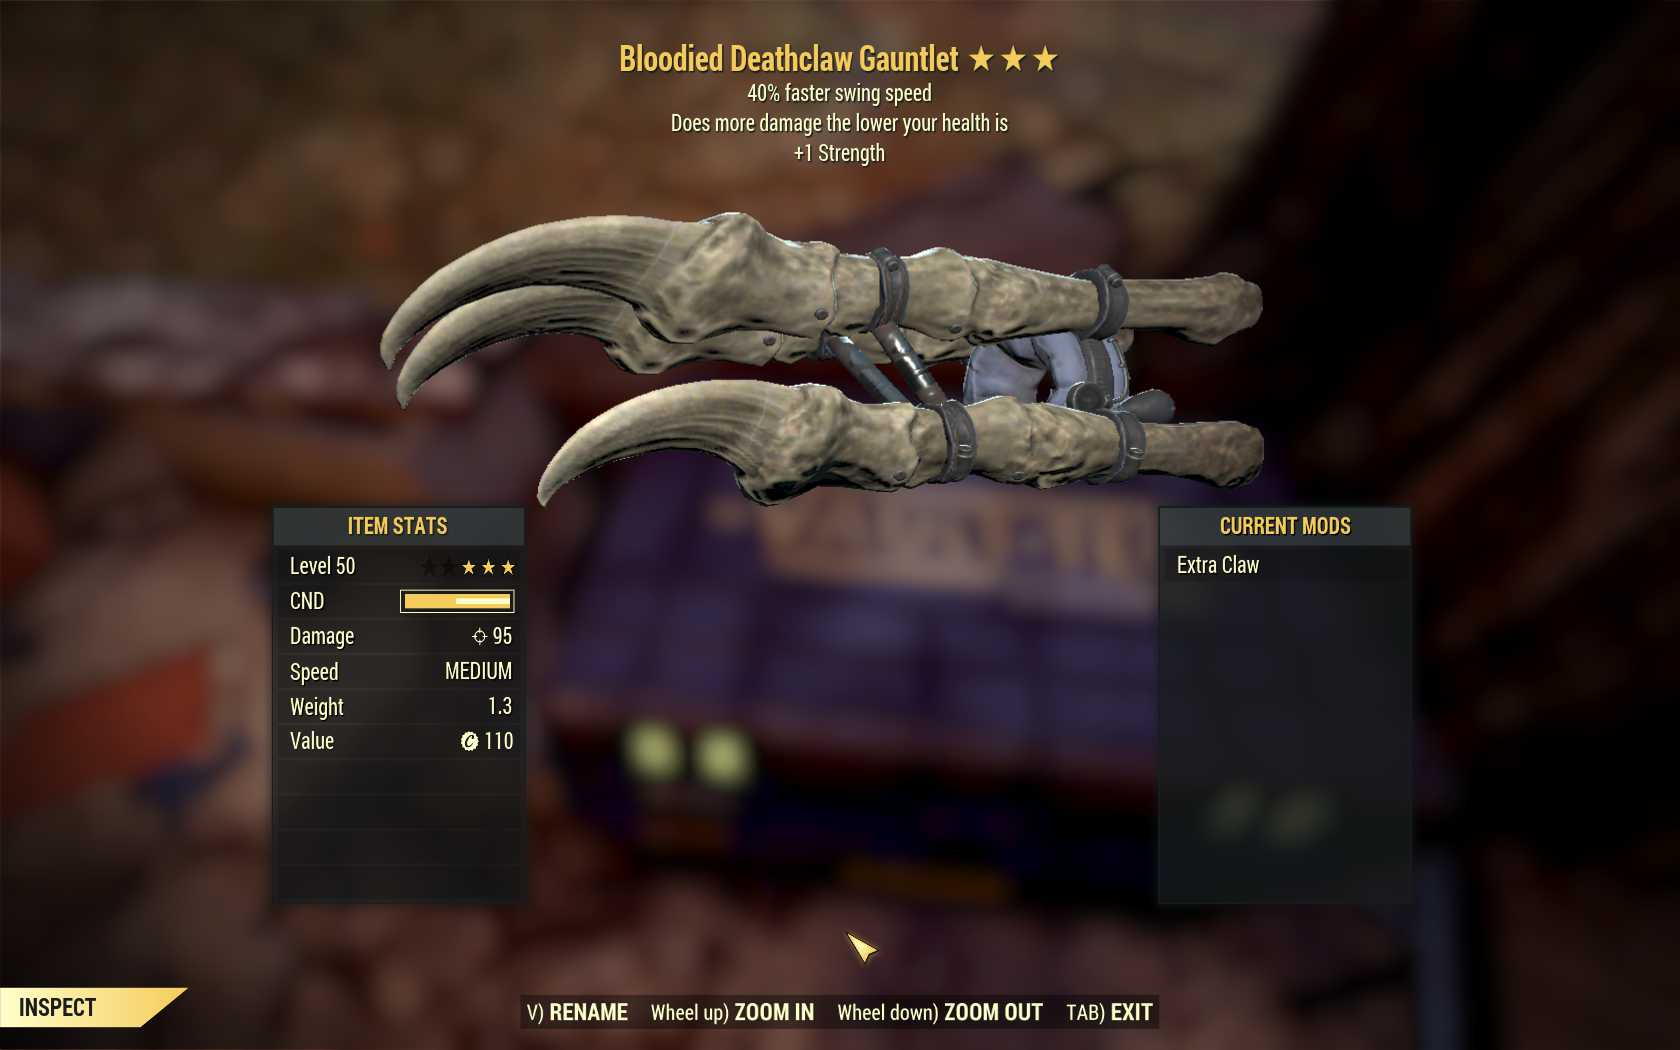 Bloodied Deathclaw Gauntlet (40% Faster Swing Speed,+1 Strength)